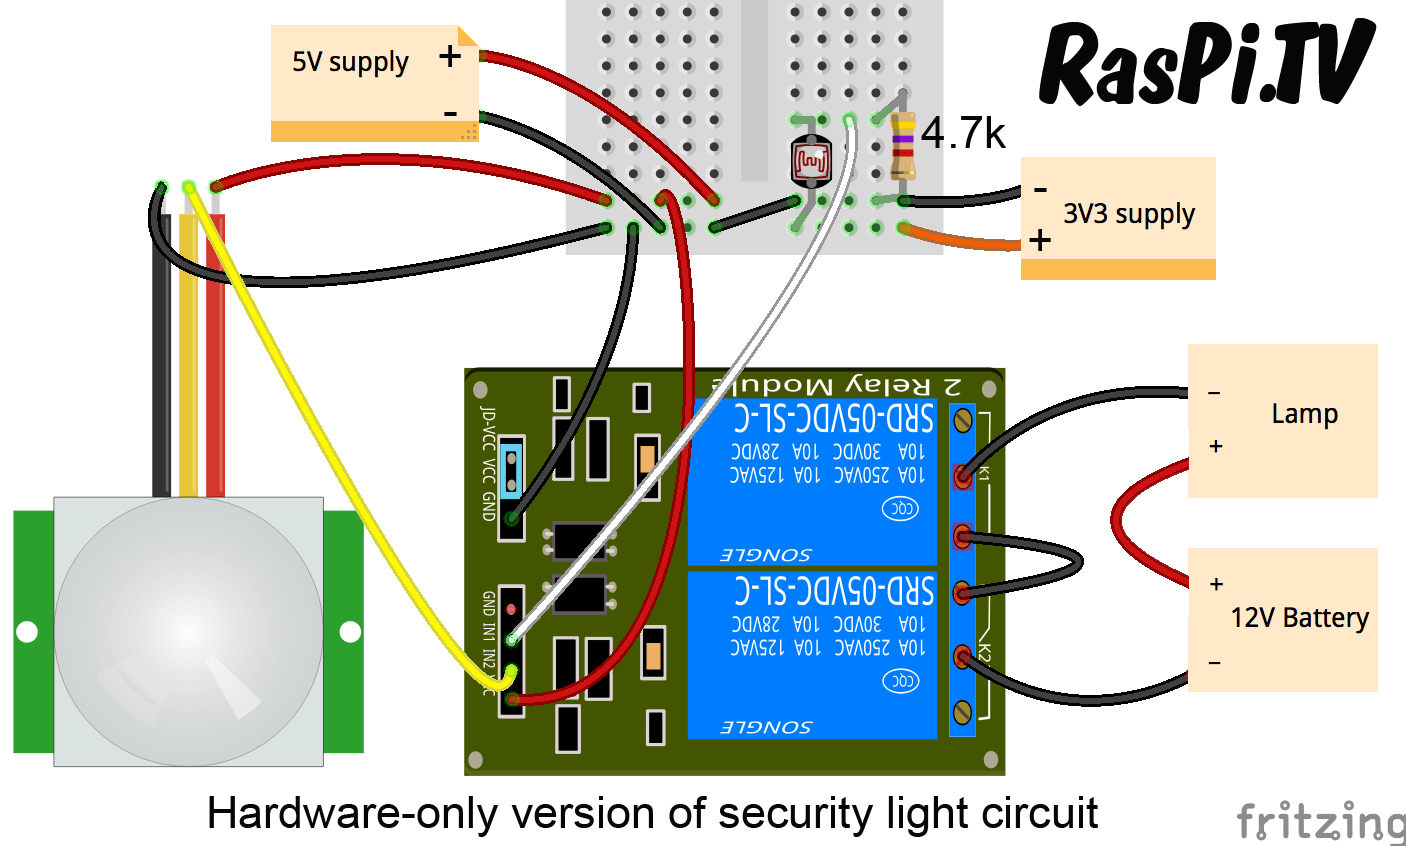 pir security light circuit diagram supply chain management workflow l293d troubleshooting for ir camera cut control